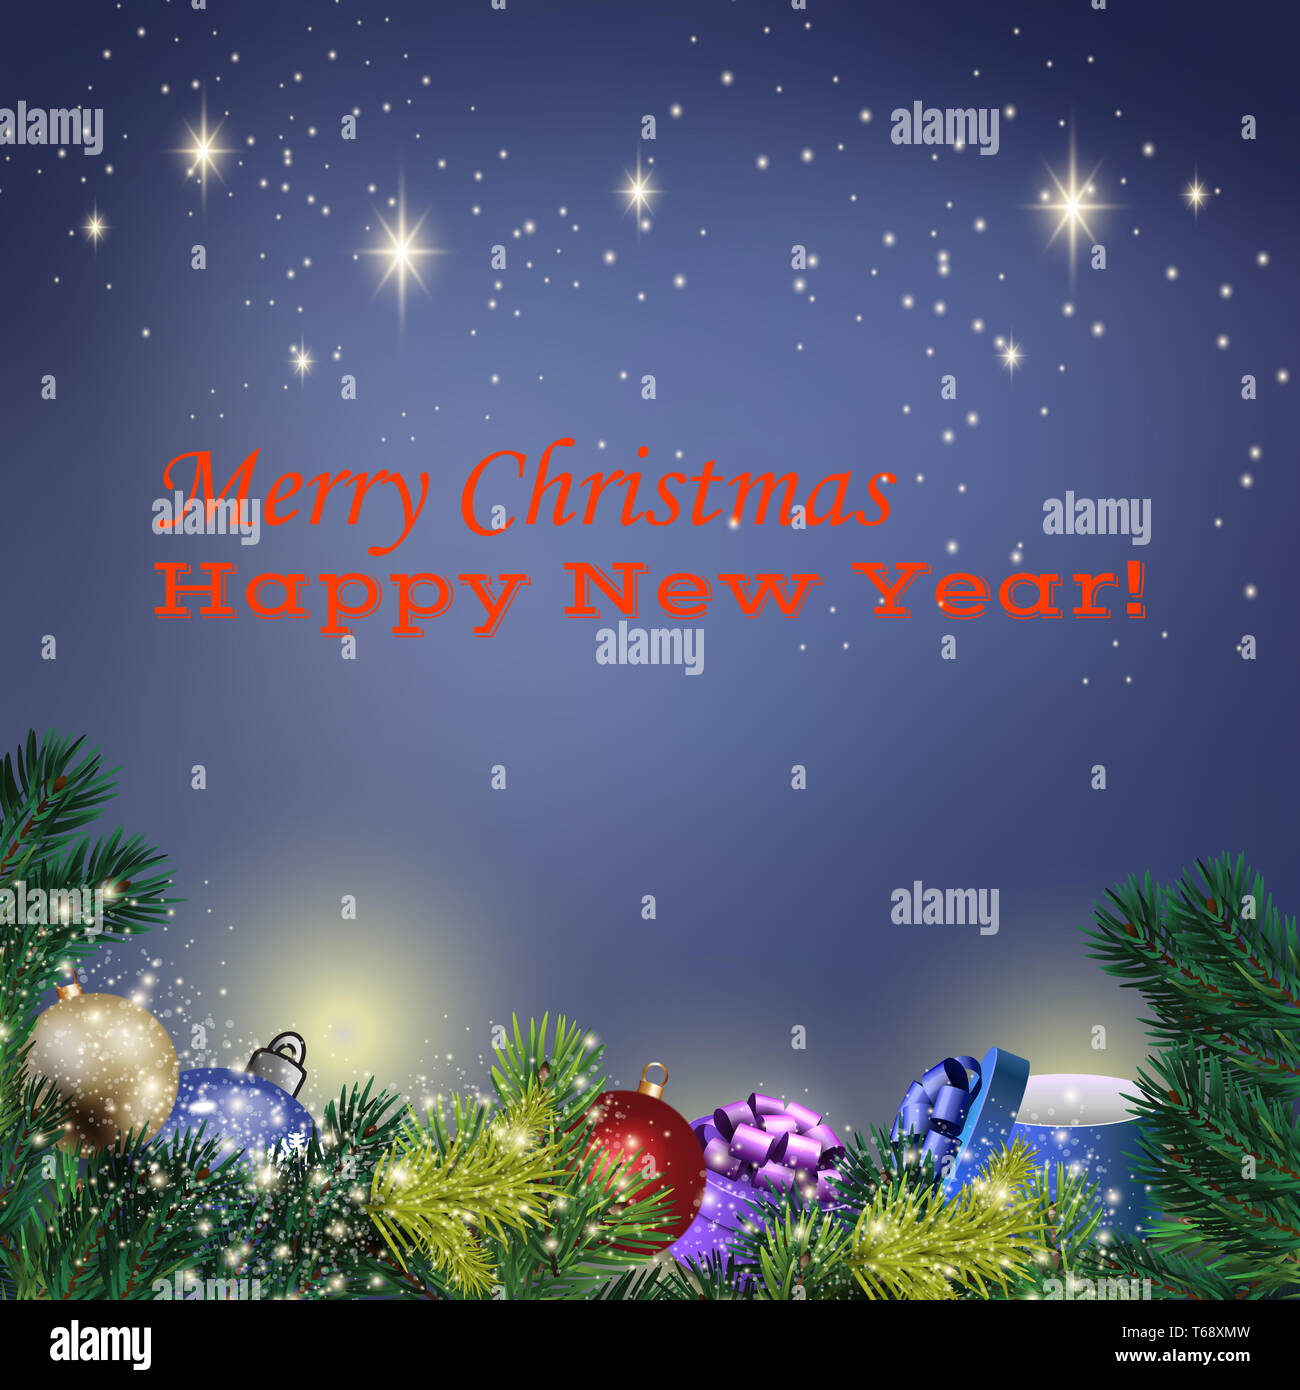 Holyday background with Christmas toys and spruce branches - Stock Image